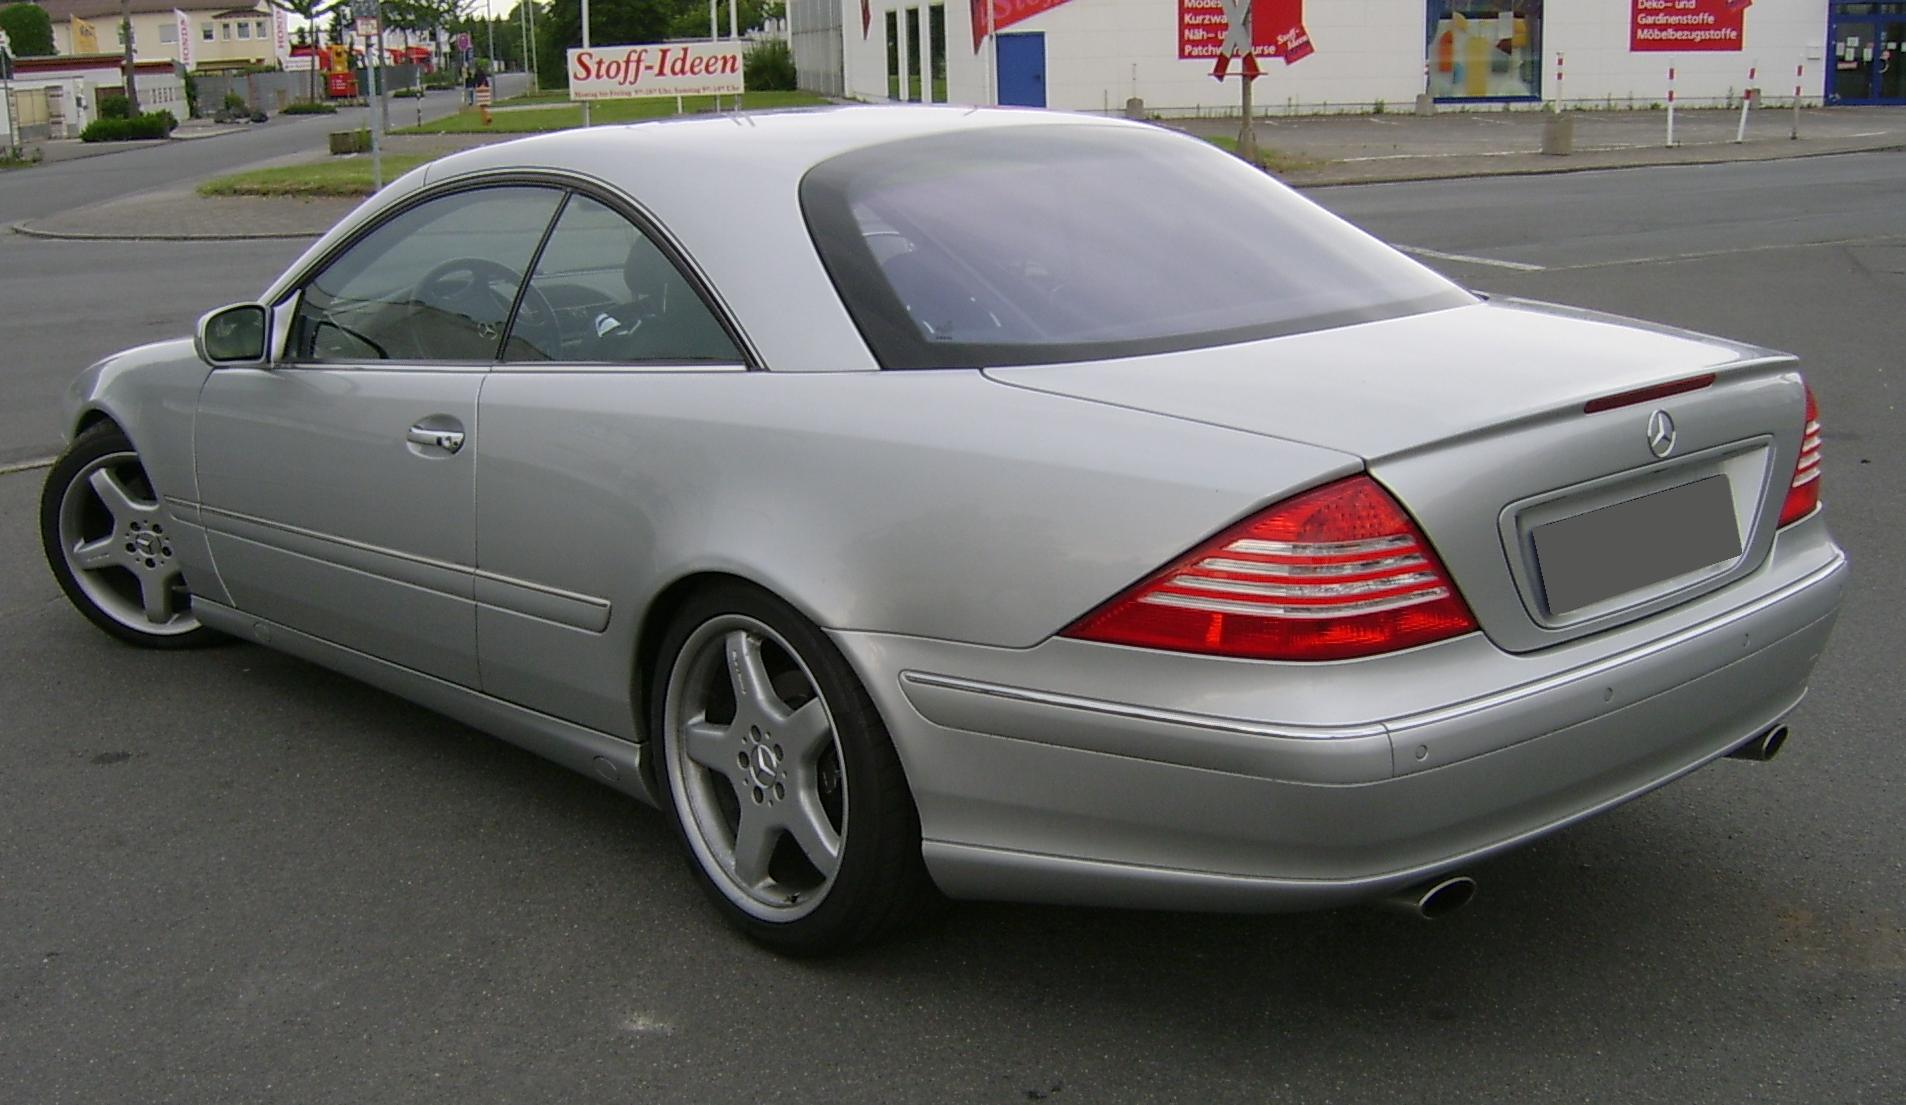 Möbelbezugsstoffe File Mercedes C215 Heck Jpg Wikimedia Commons